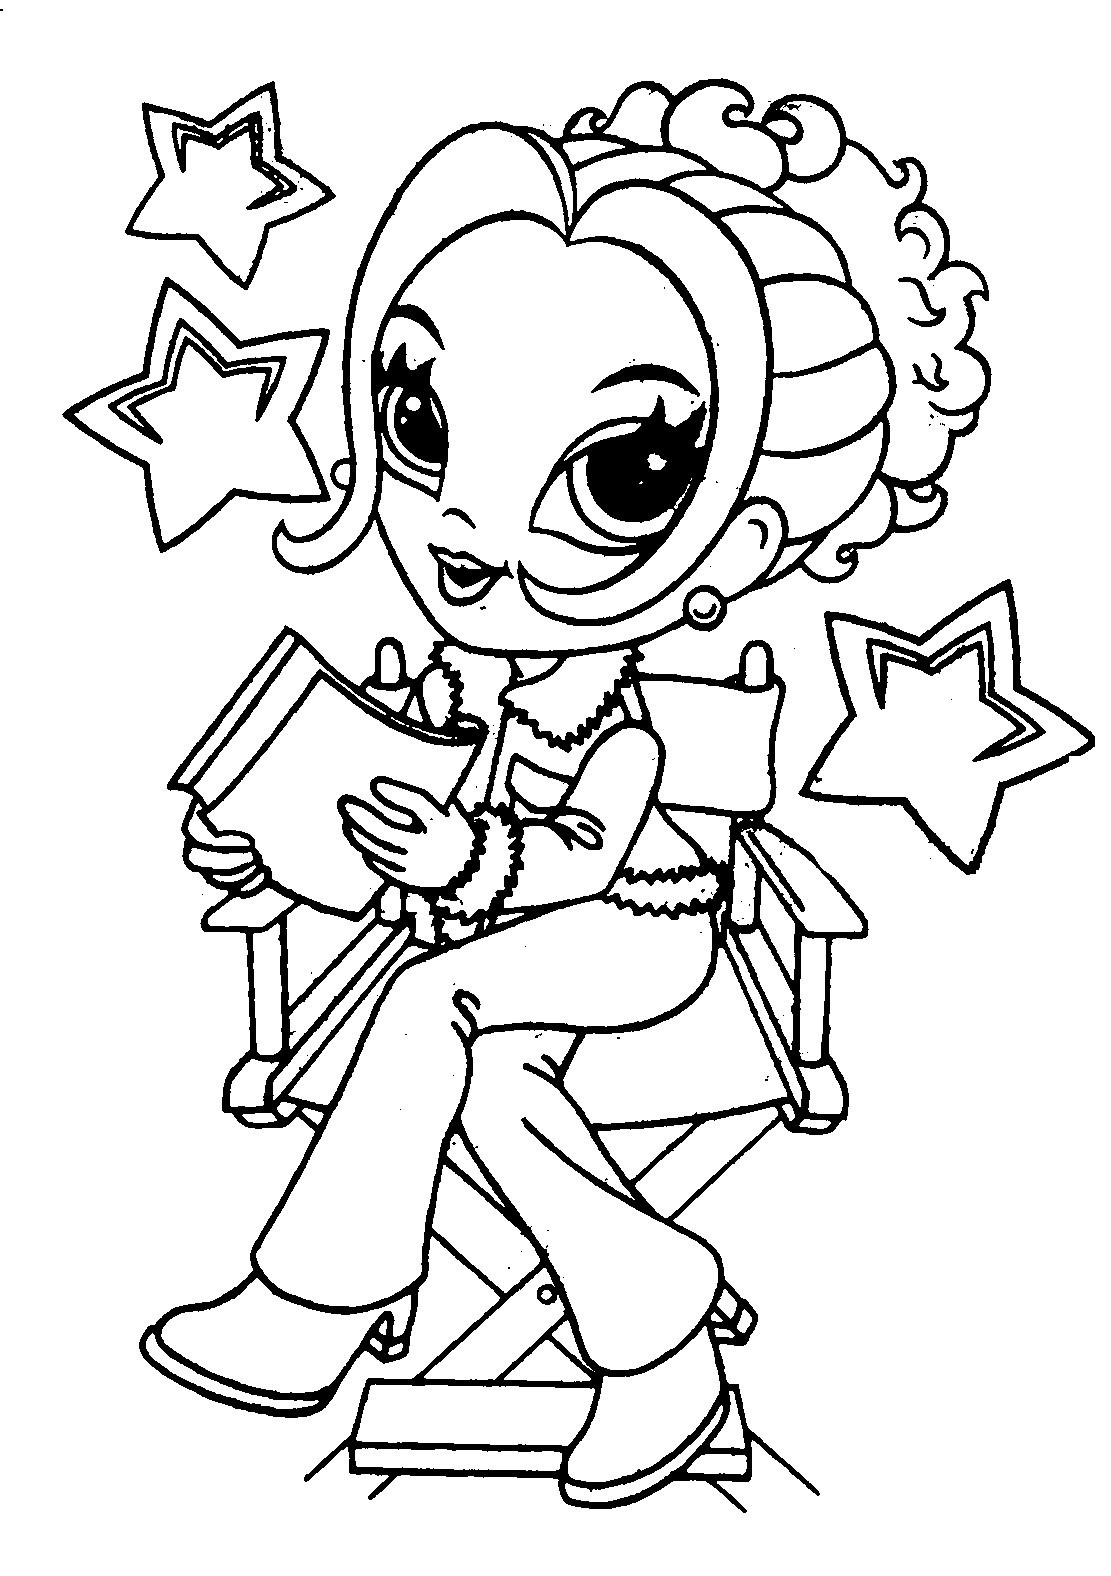 Cute Girl Coloring Sheets For Kids  Free Coloring Pages For Girls Cute Image 17 Gianfreda